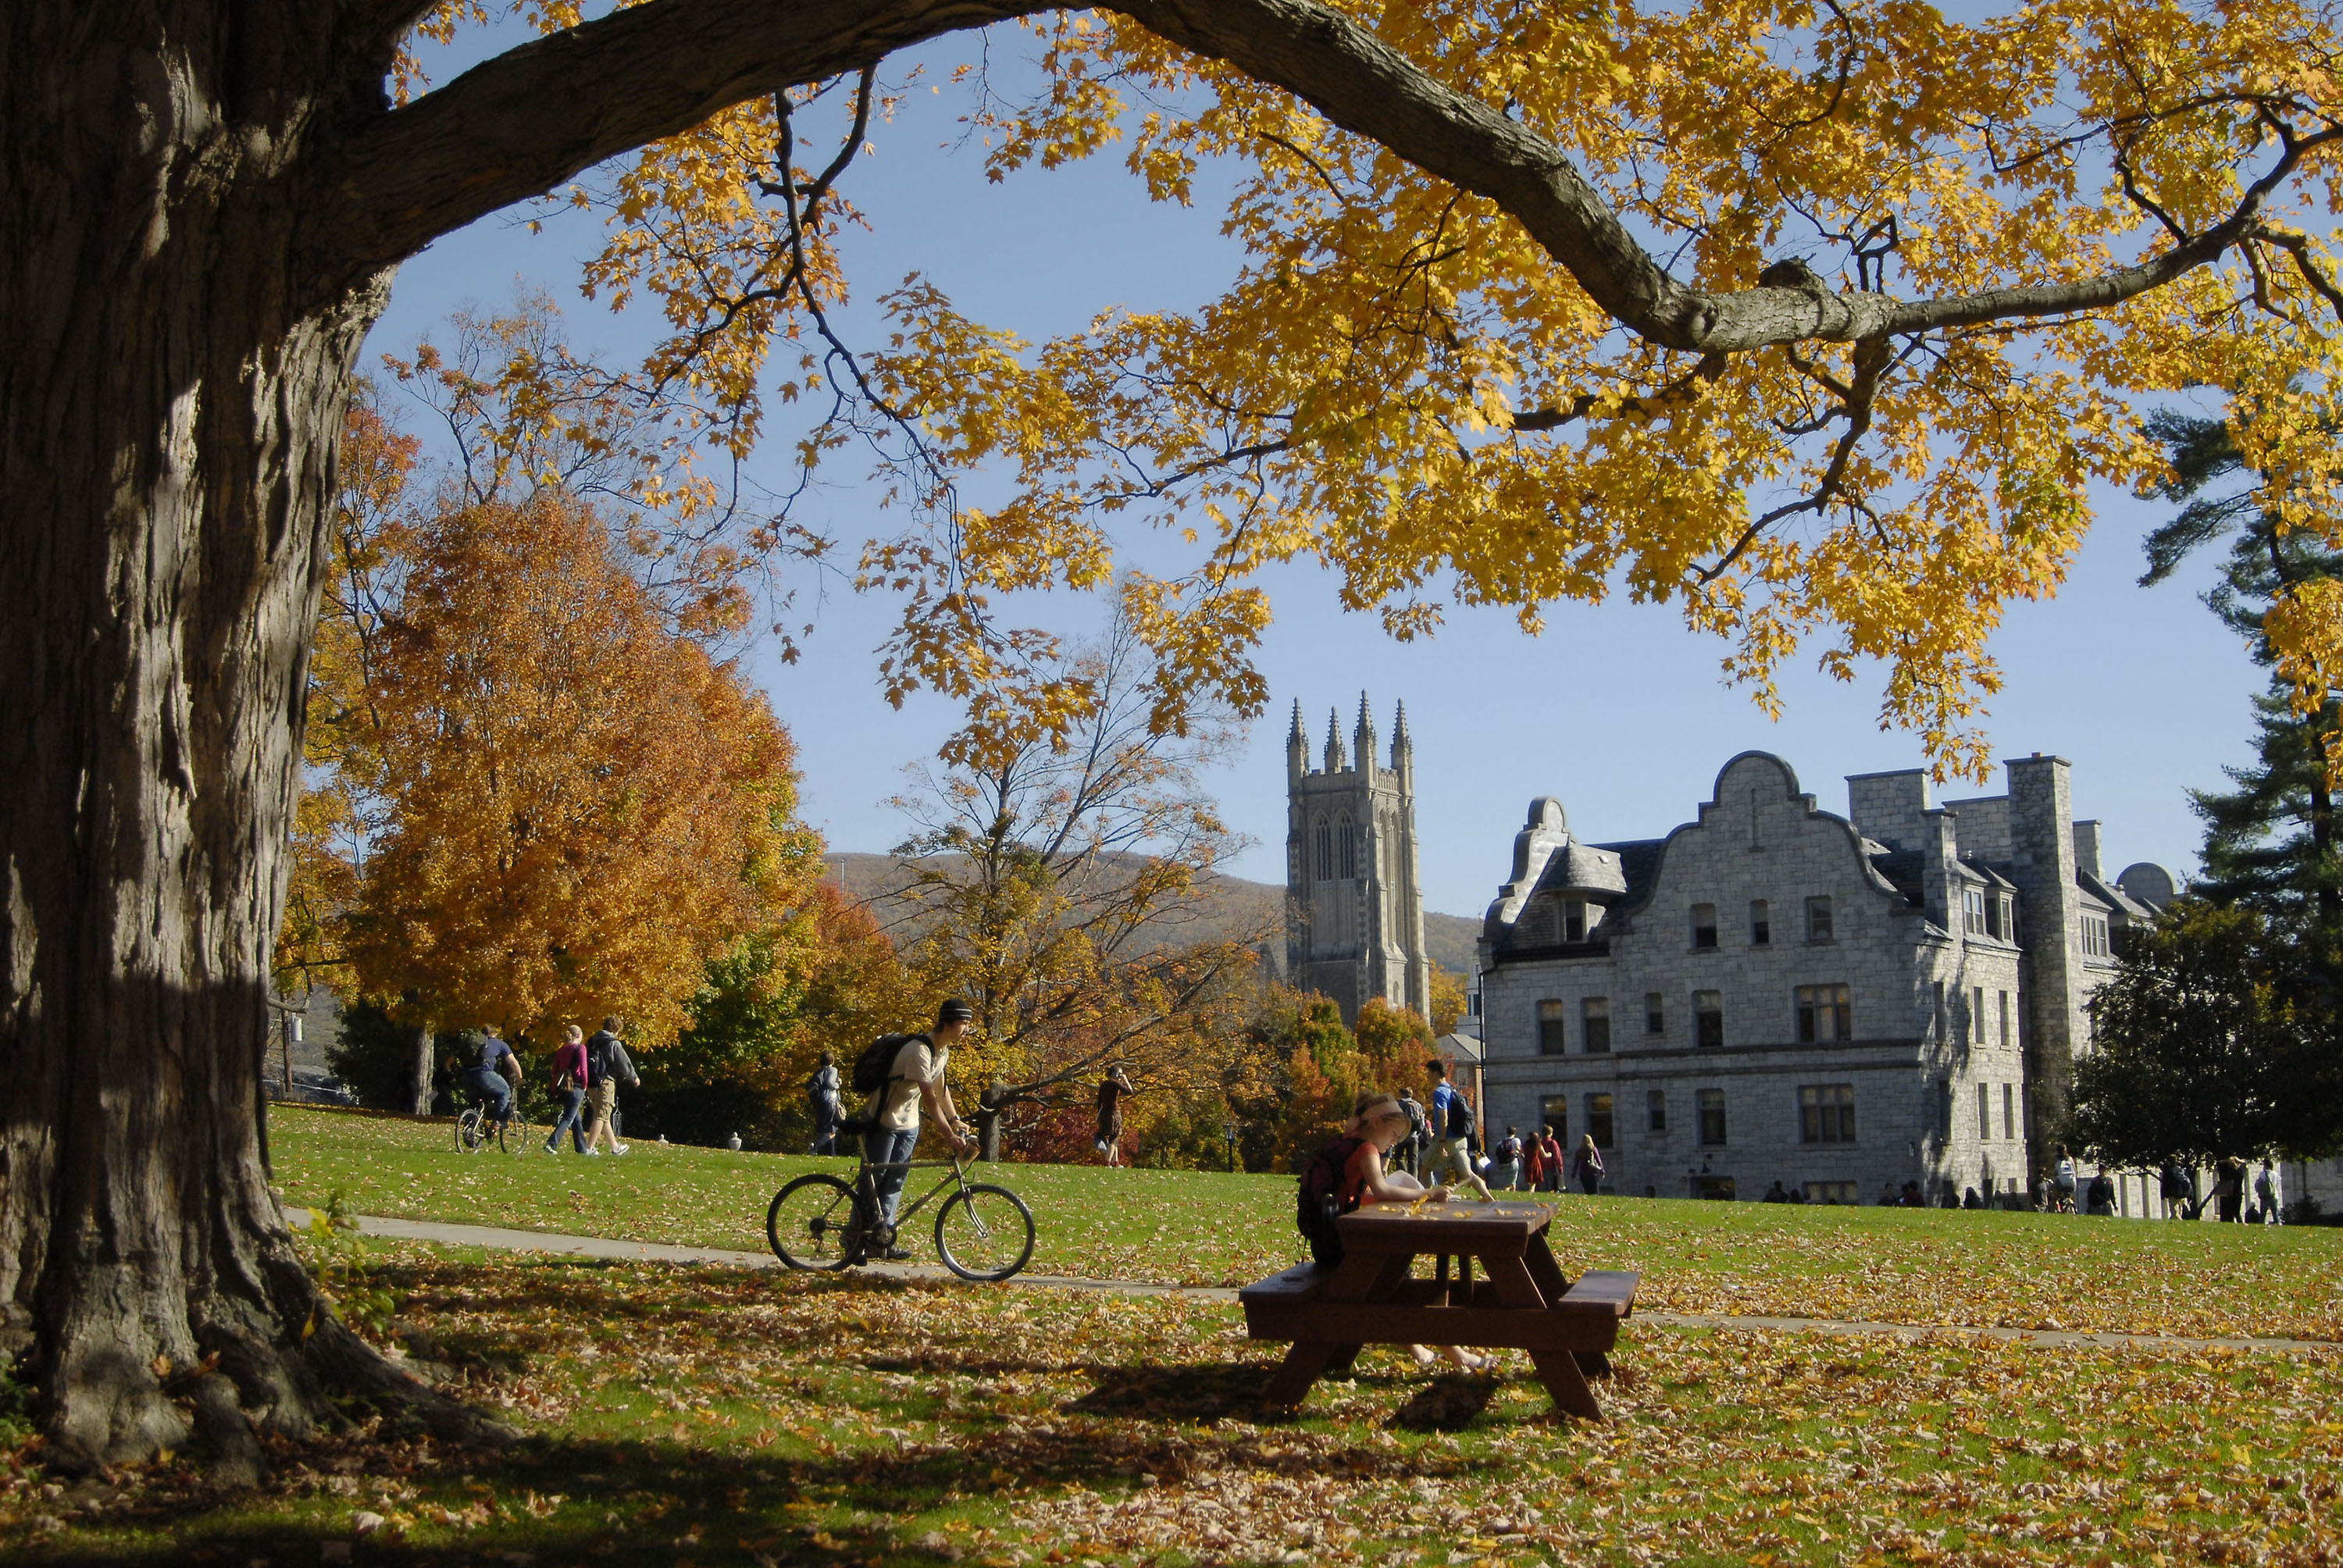 Students pass time between classes on the campus of Williams College in Williamstown, Mass., on October 22, 2007.